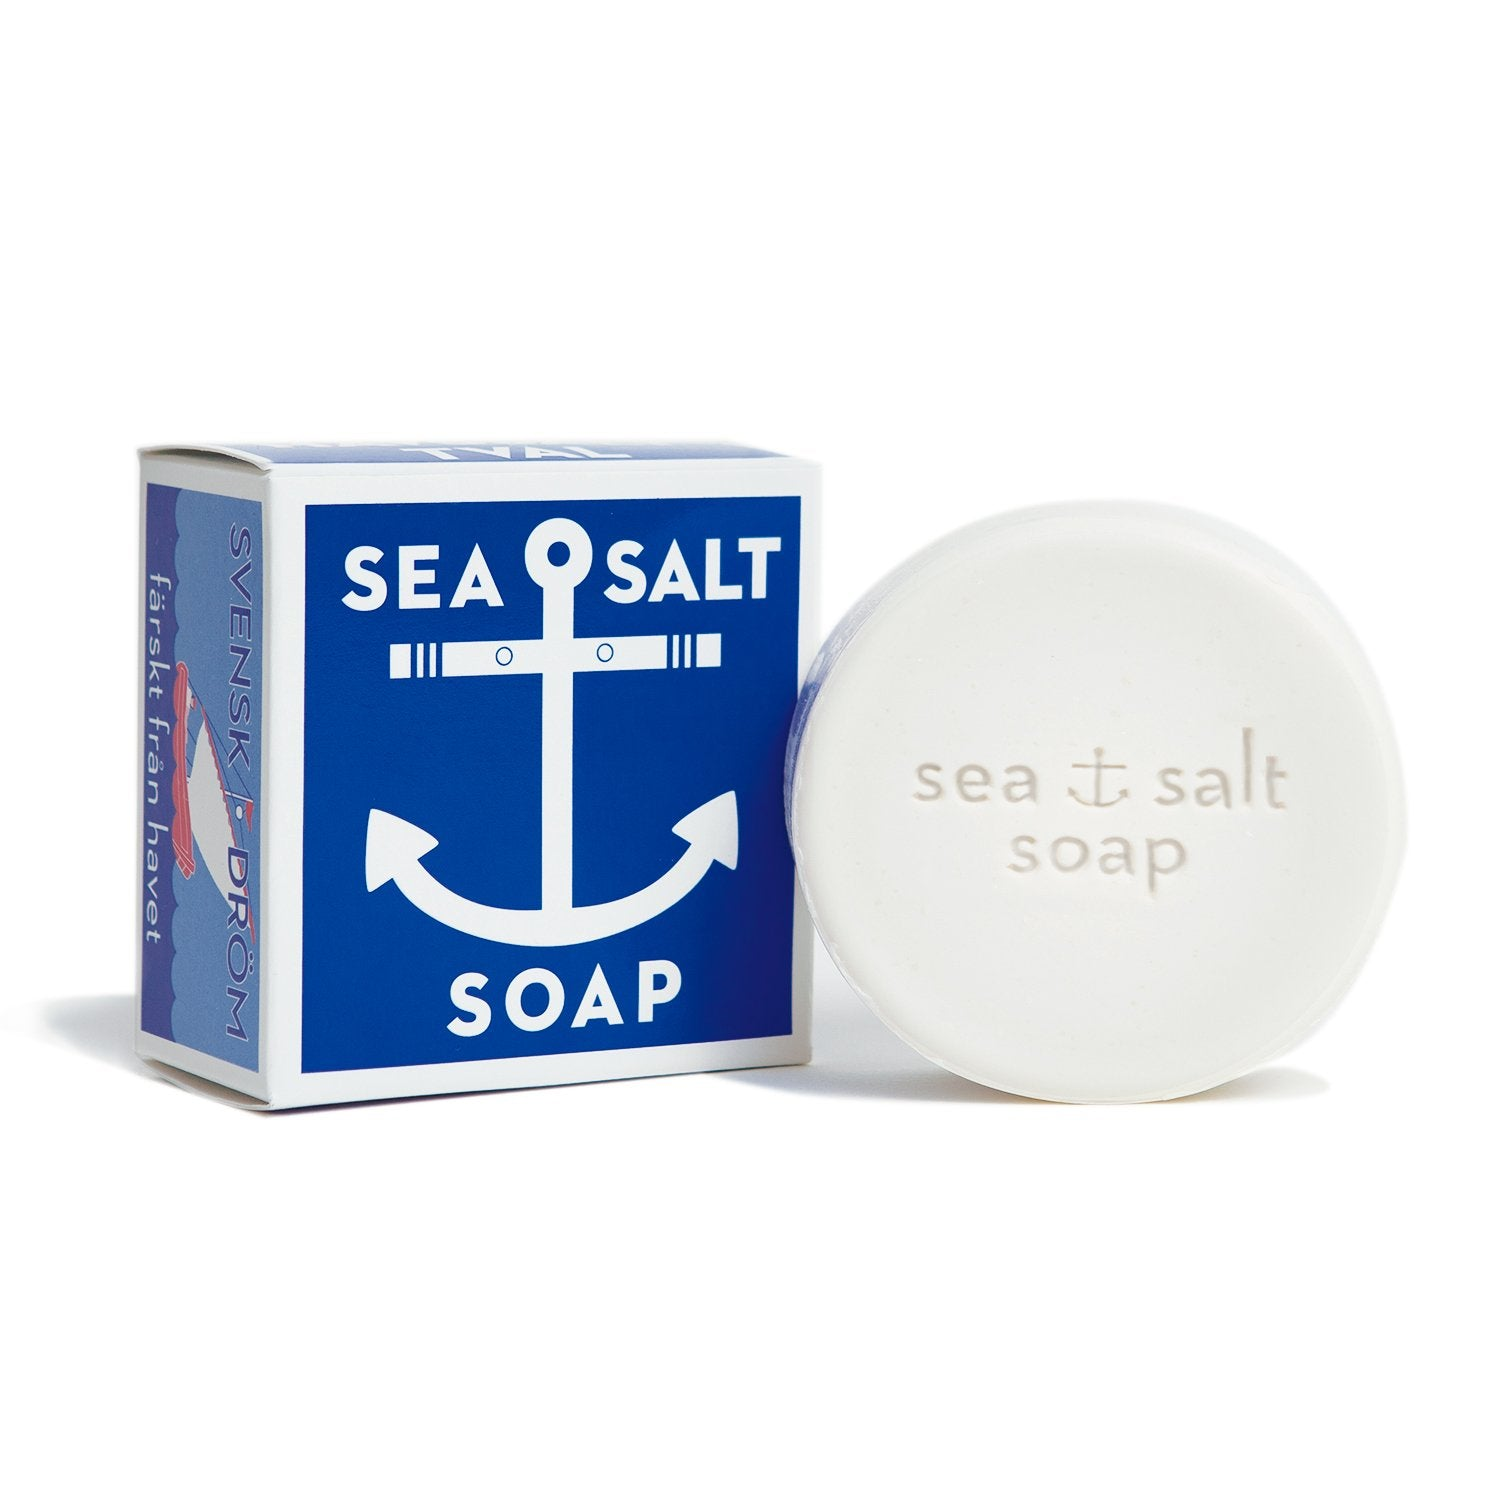 Kalastyle - Swedish Dream® Sea Salt Soap